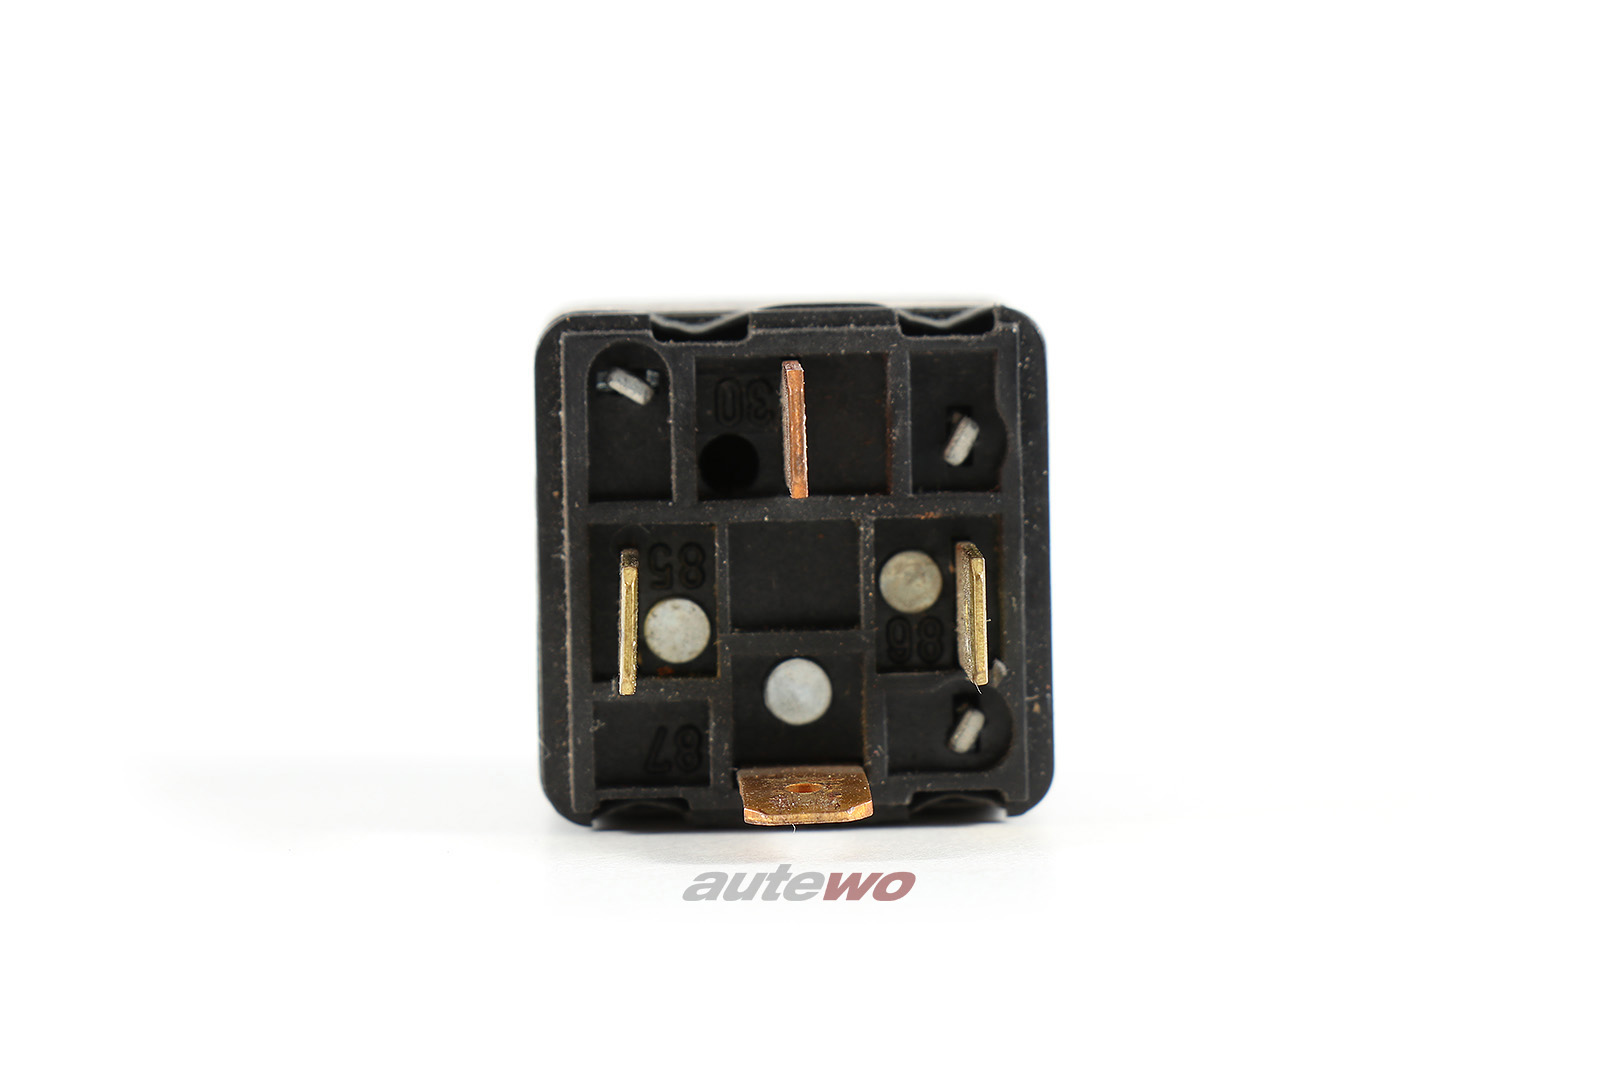 431951253B 431951253H Audi 80/90/Coupe Typ 81/85/89/Urquattro Relais Hupe